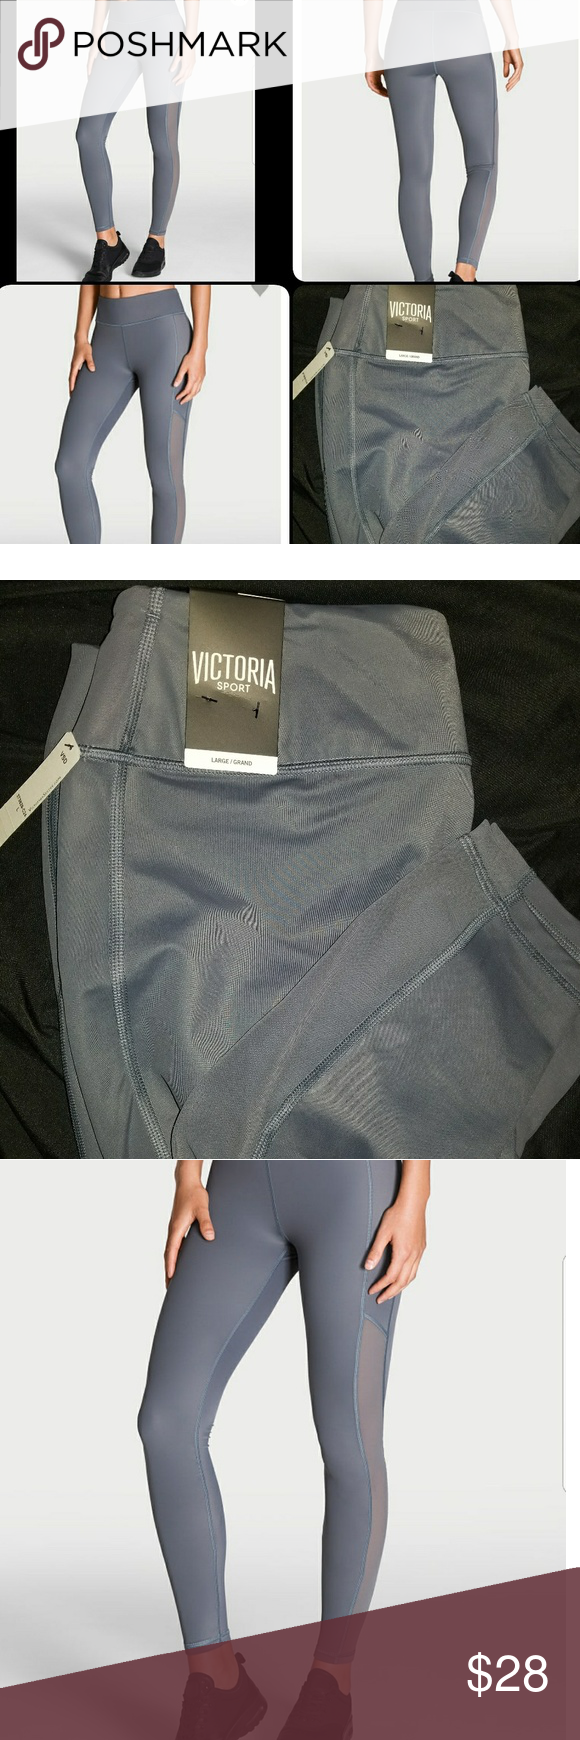 fd3934d5bb806 Victoria Secret Sport Leggings Brand new size large leggings from Victoria  Secret's Victoria Sport